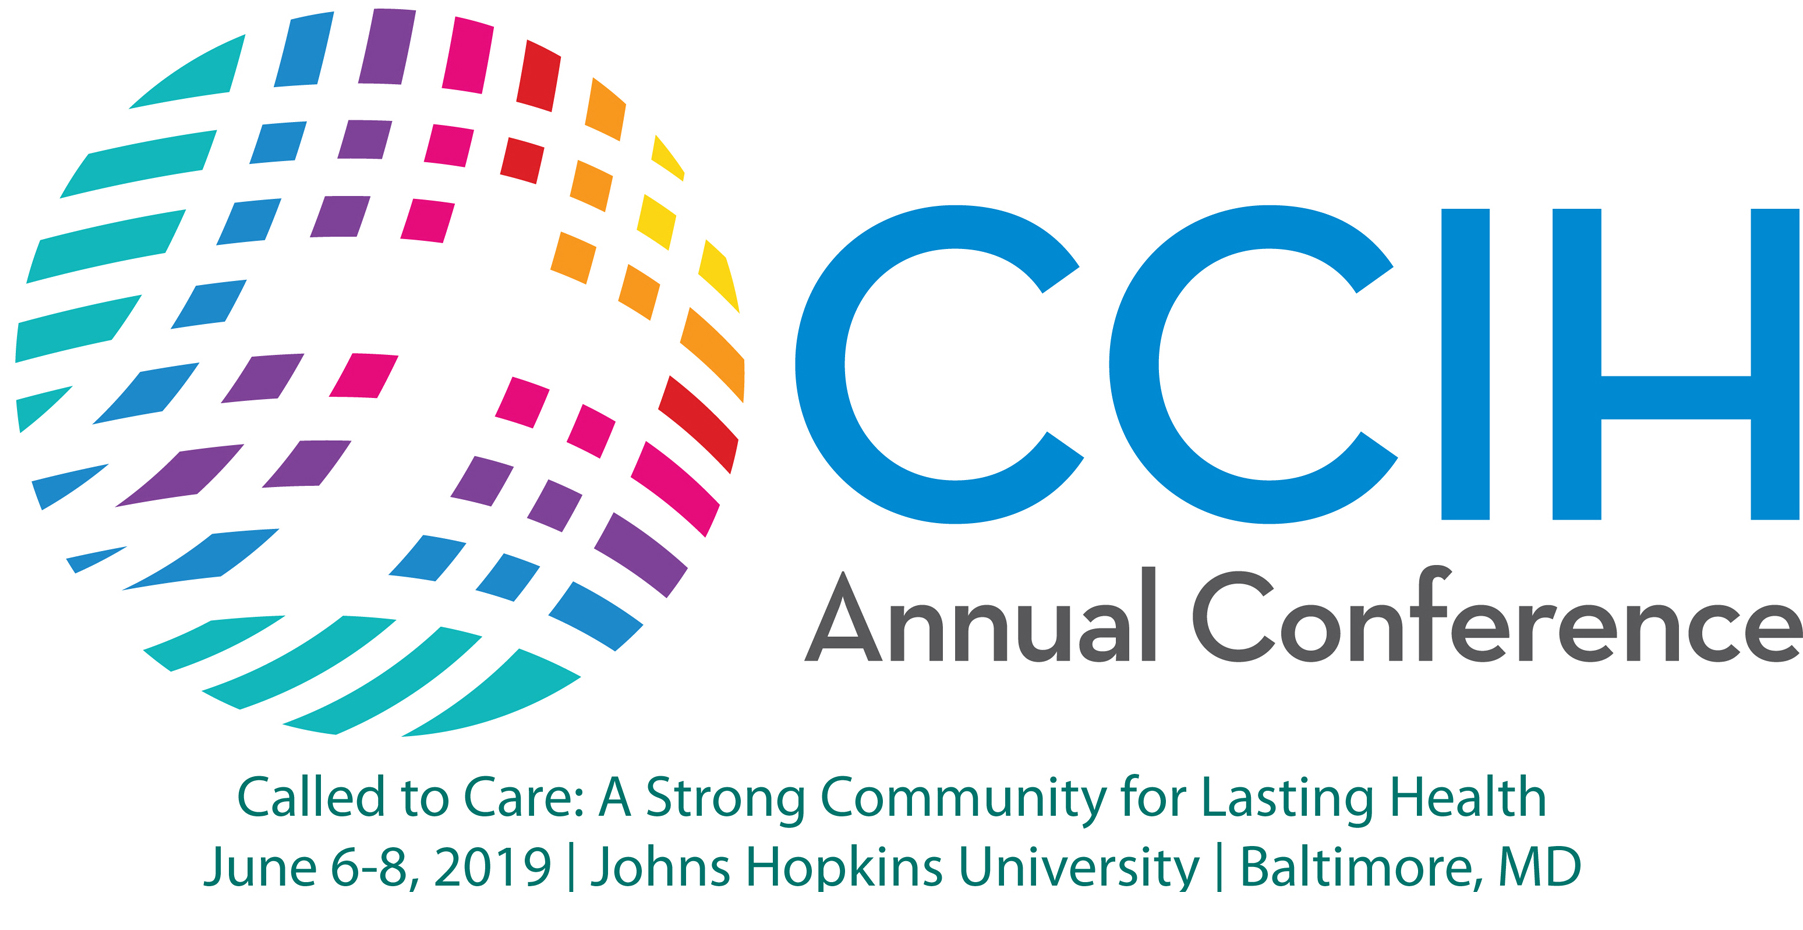 CCIH 33rd Annual Conference - Called to Care: A Strong Community for Lasting Health